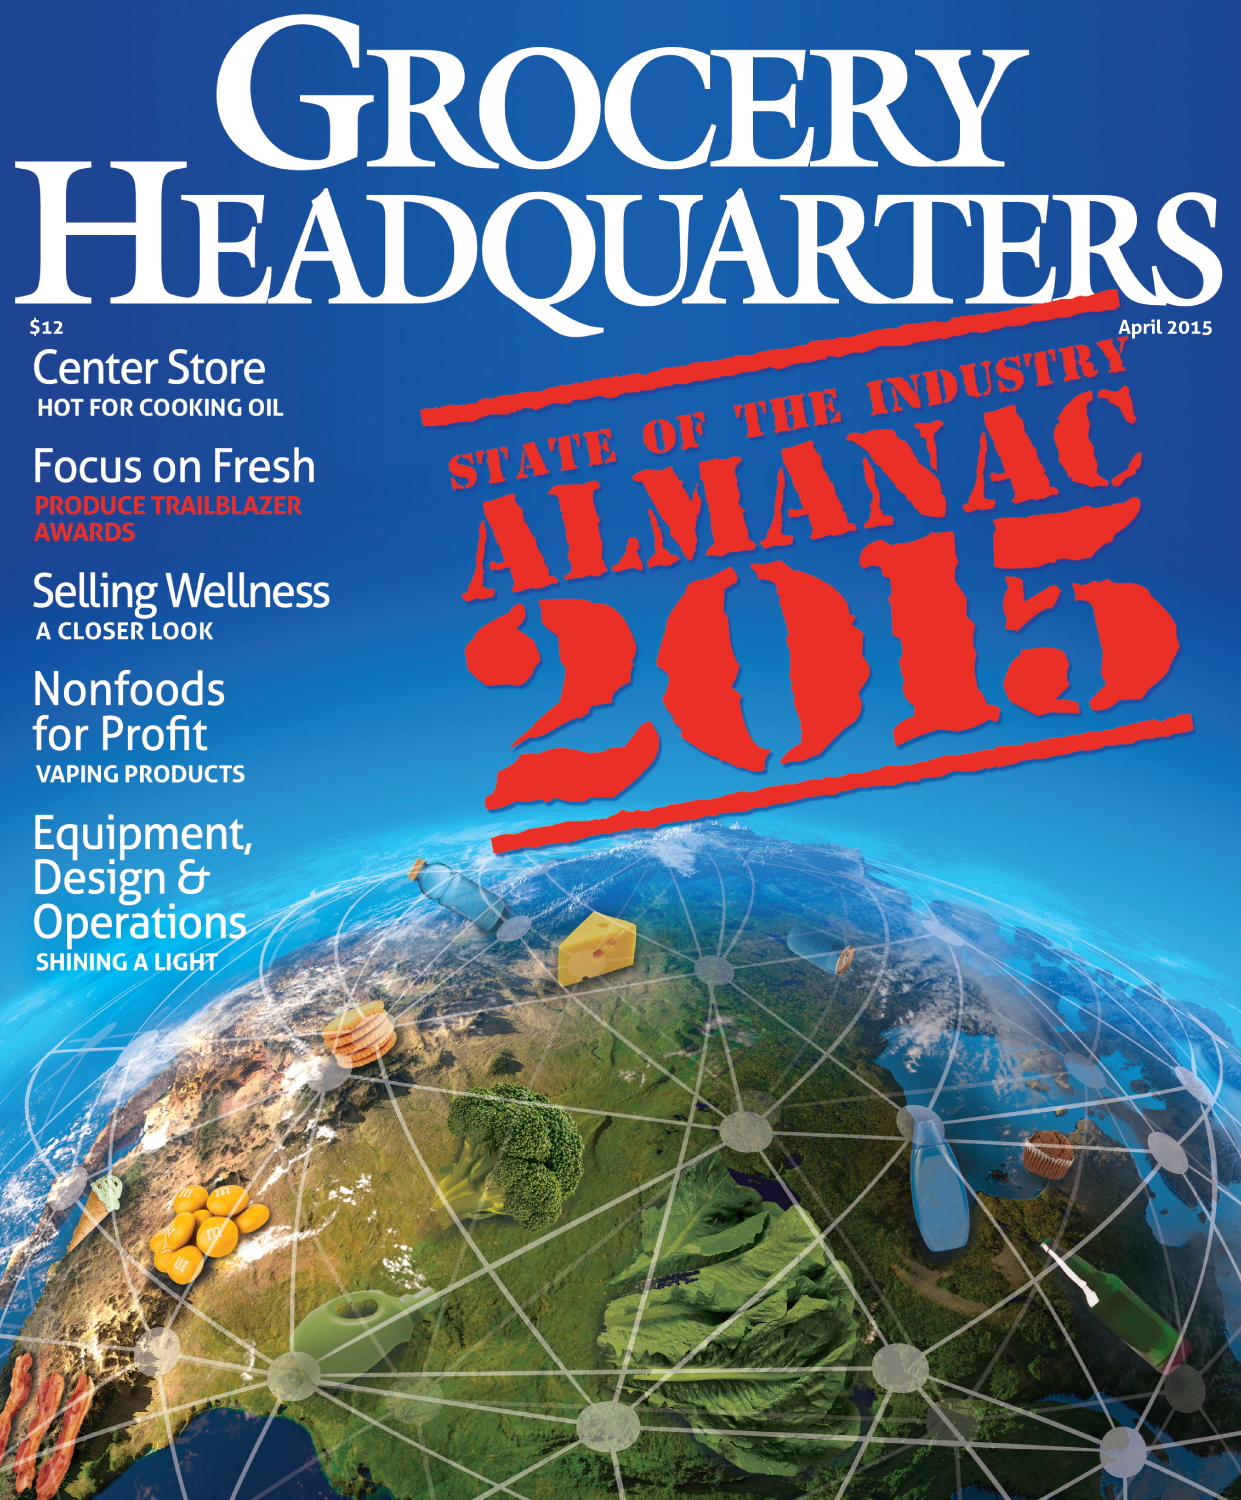 Winsight Grocery Business Magazine April 2015 Issue